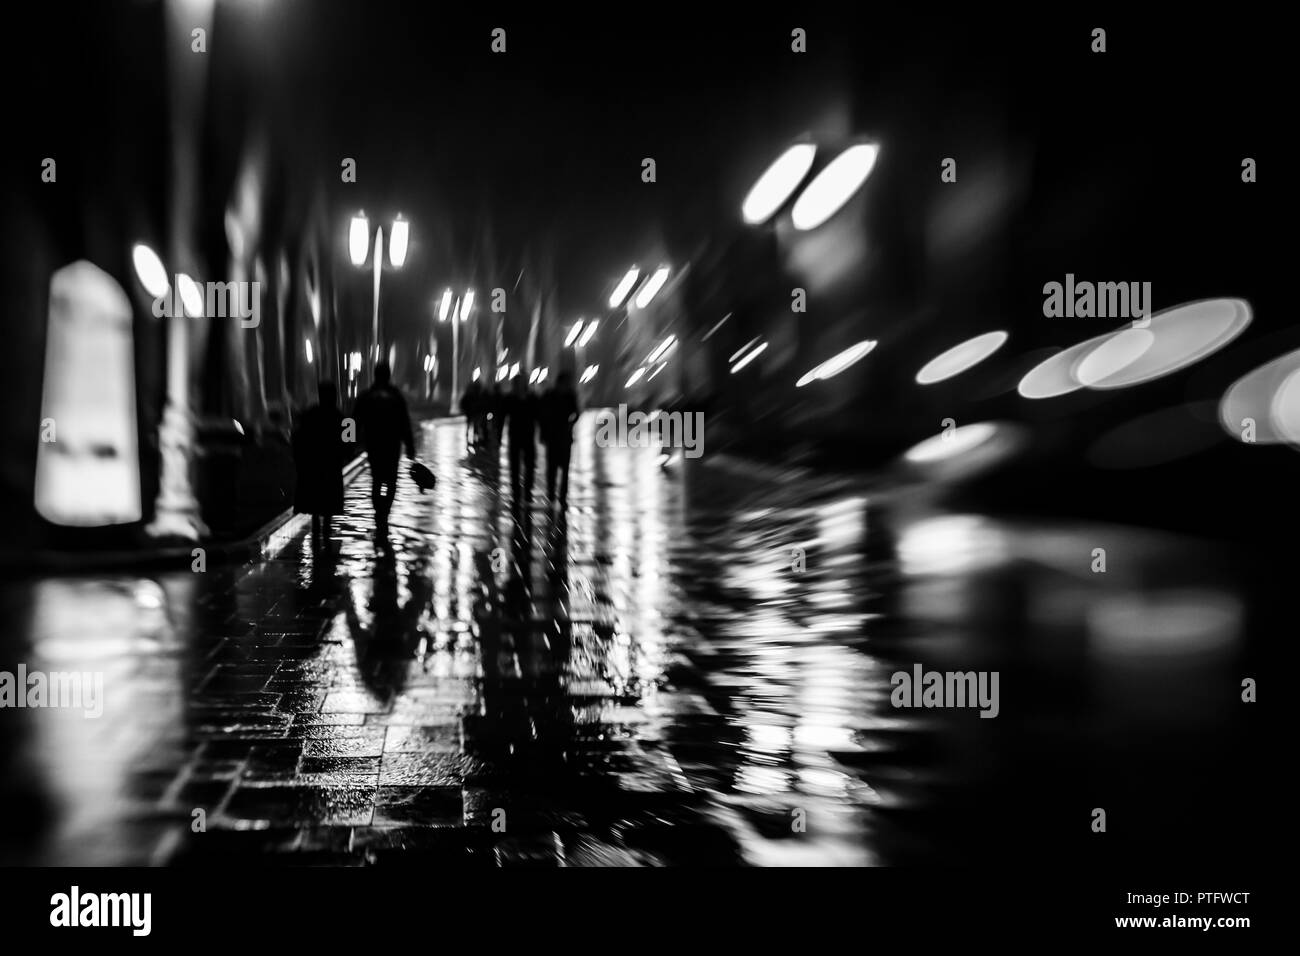 Silhouettes of people like zombie walking at night in the rainy in the light of street lamps,soft blurred focus. - Stock Image